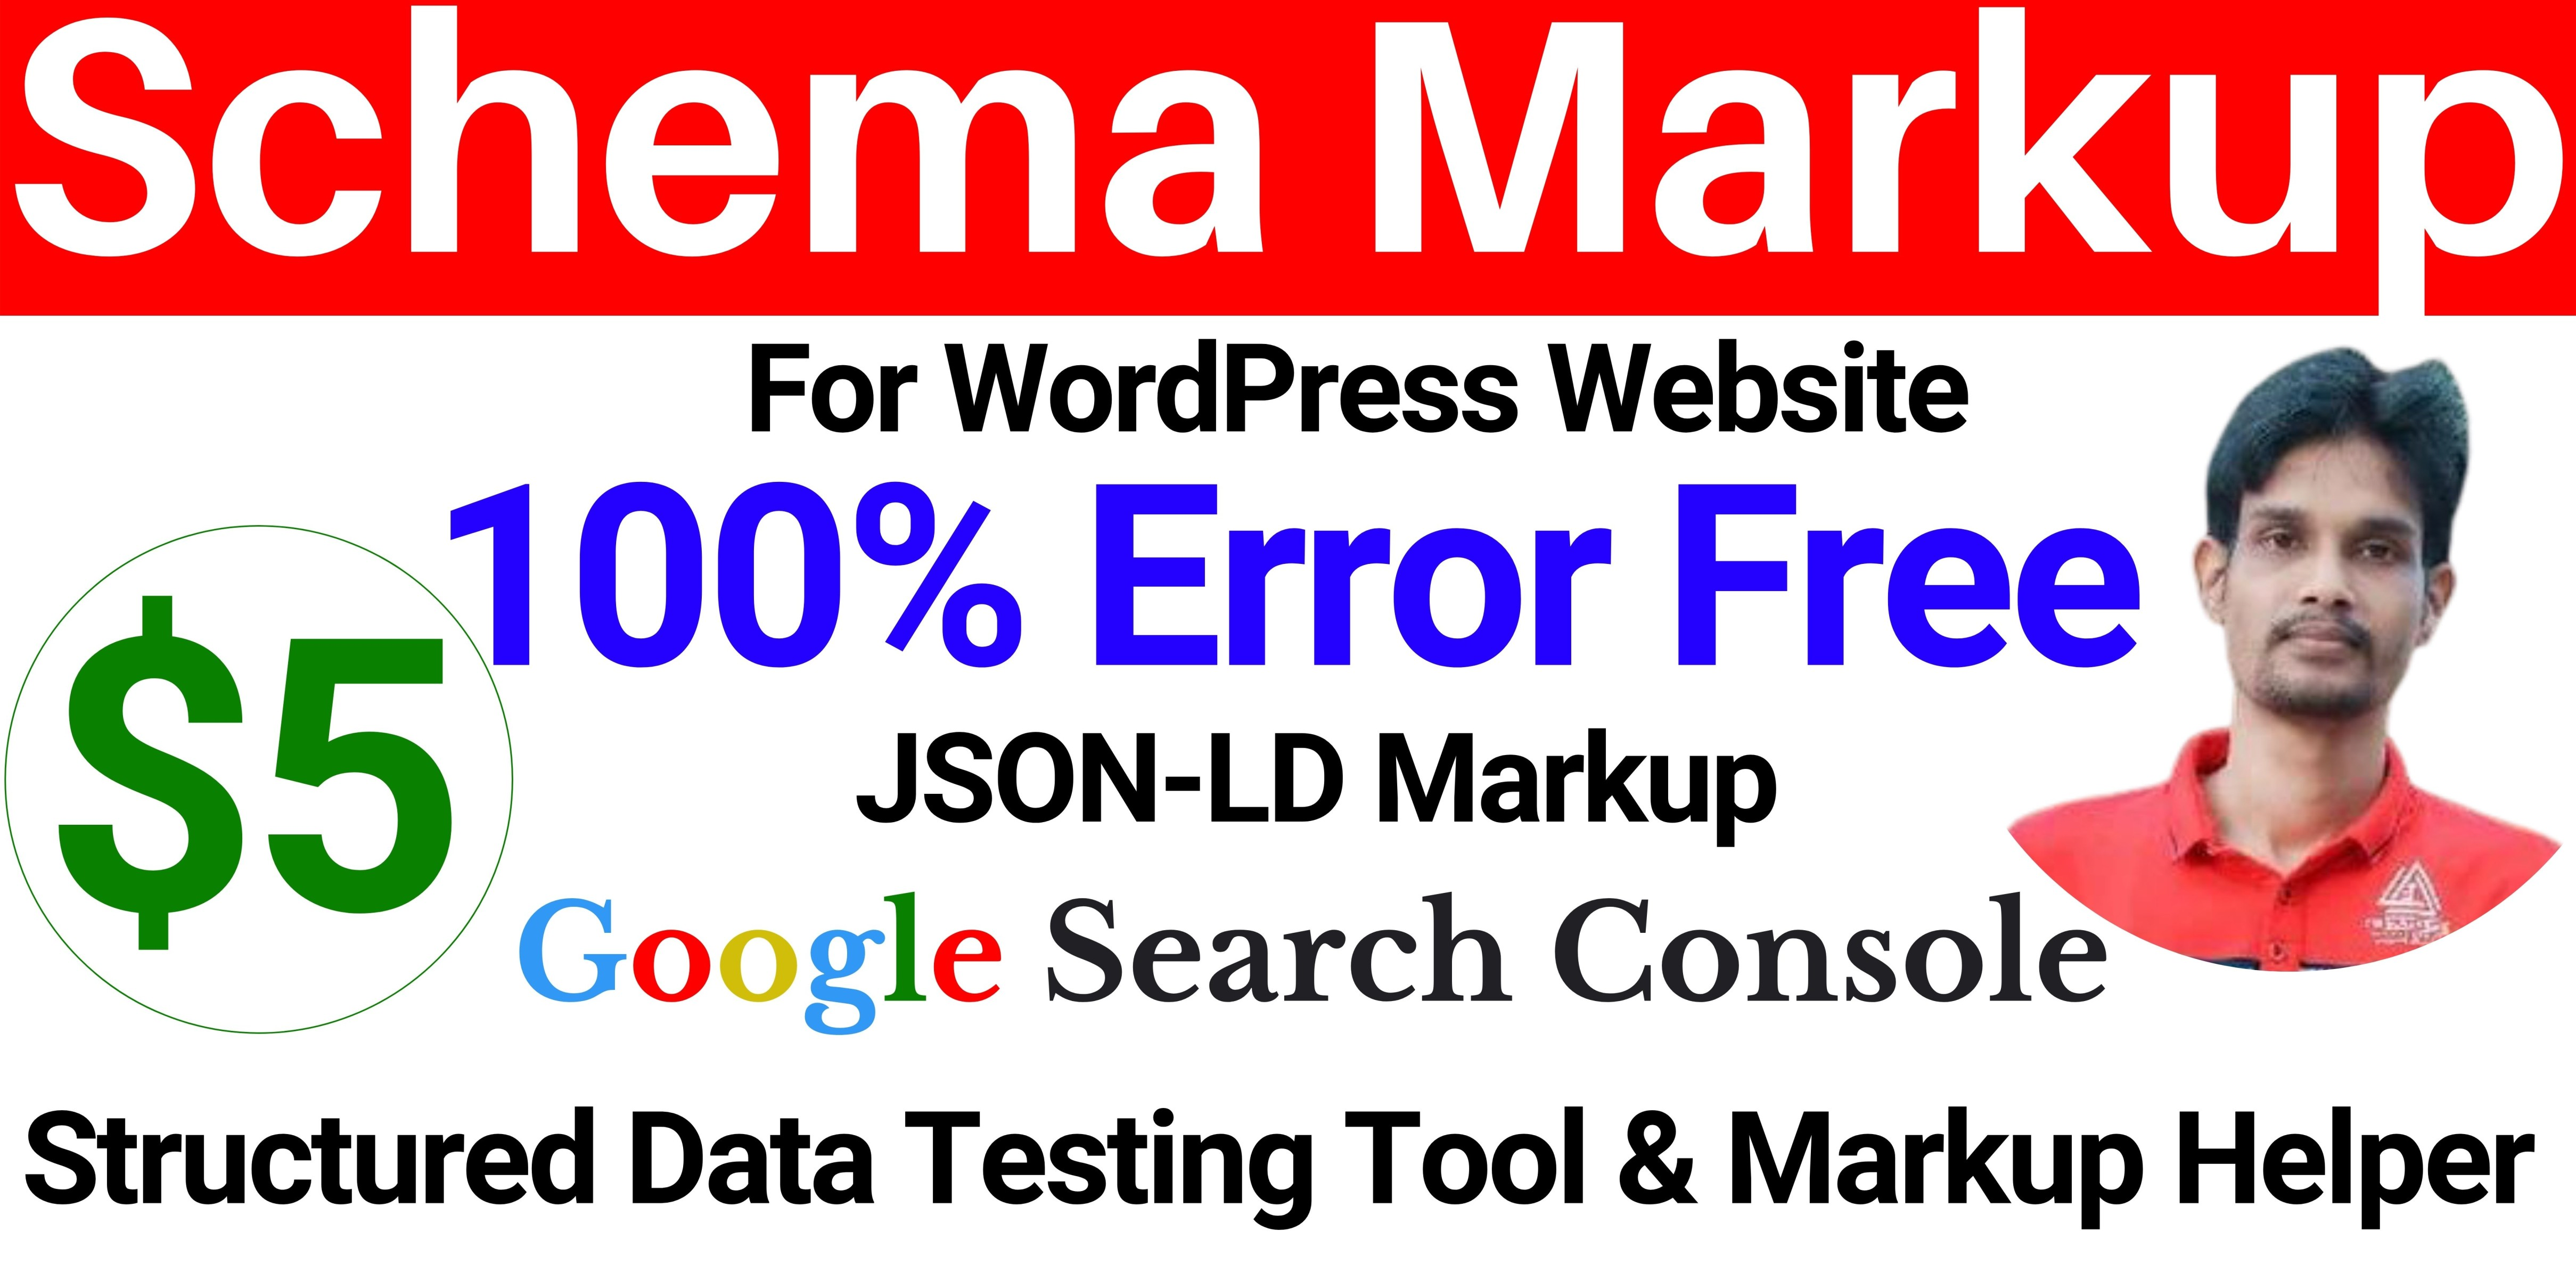 JSON-LD Schema Markup for your WordPress Website,  eCommerce Products or Blogs